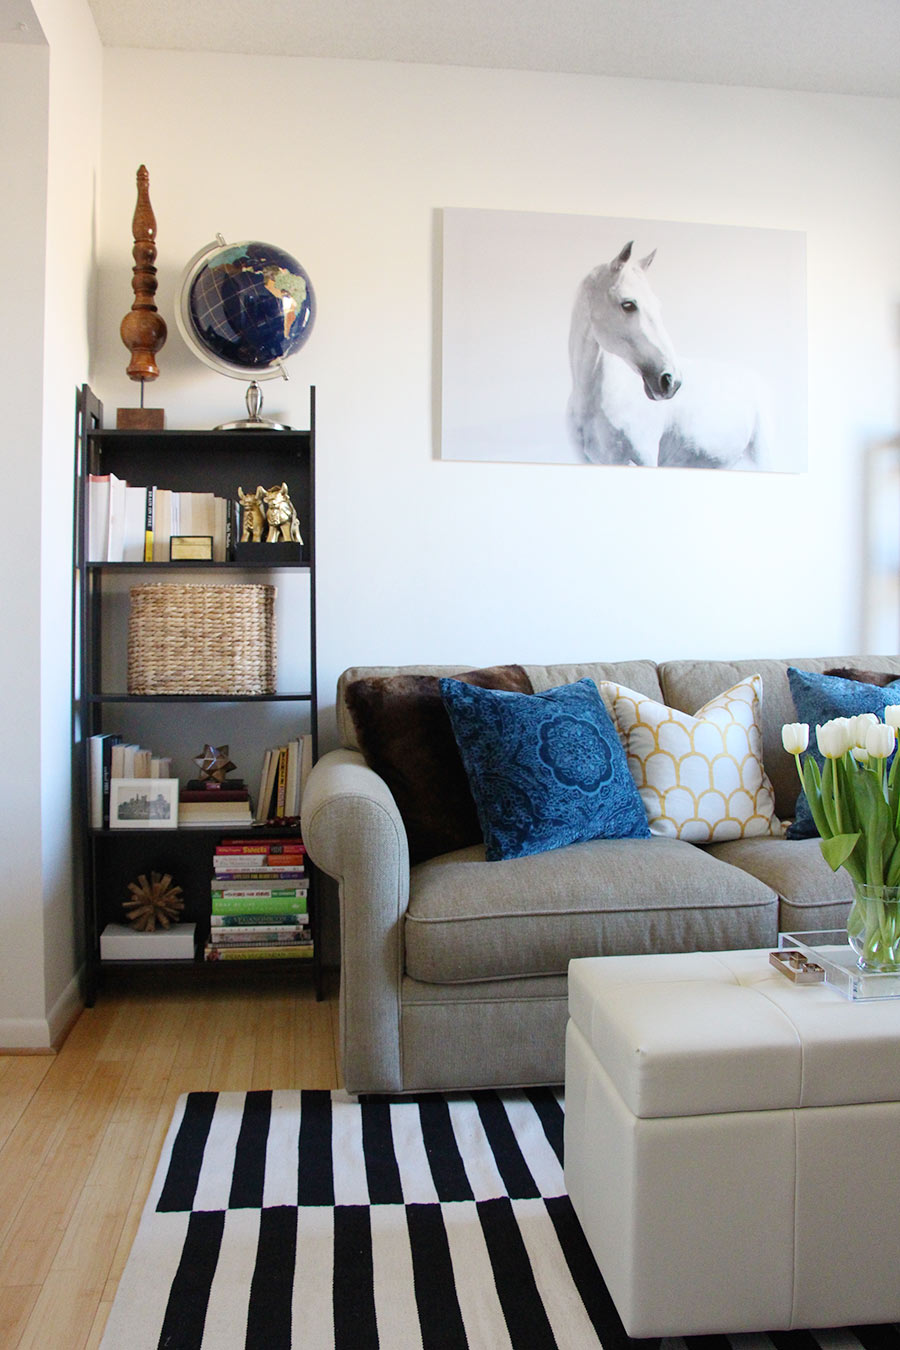 chic-guest-room-small-space-apartment.jpg